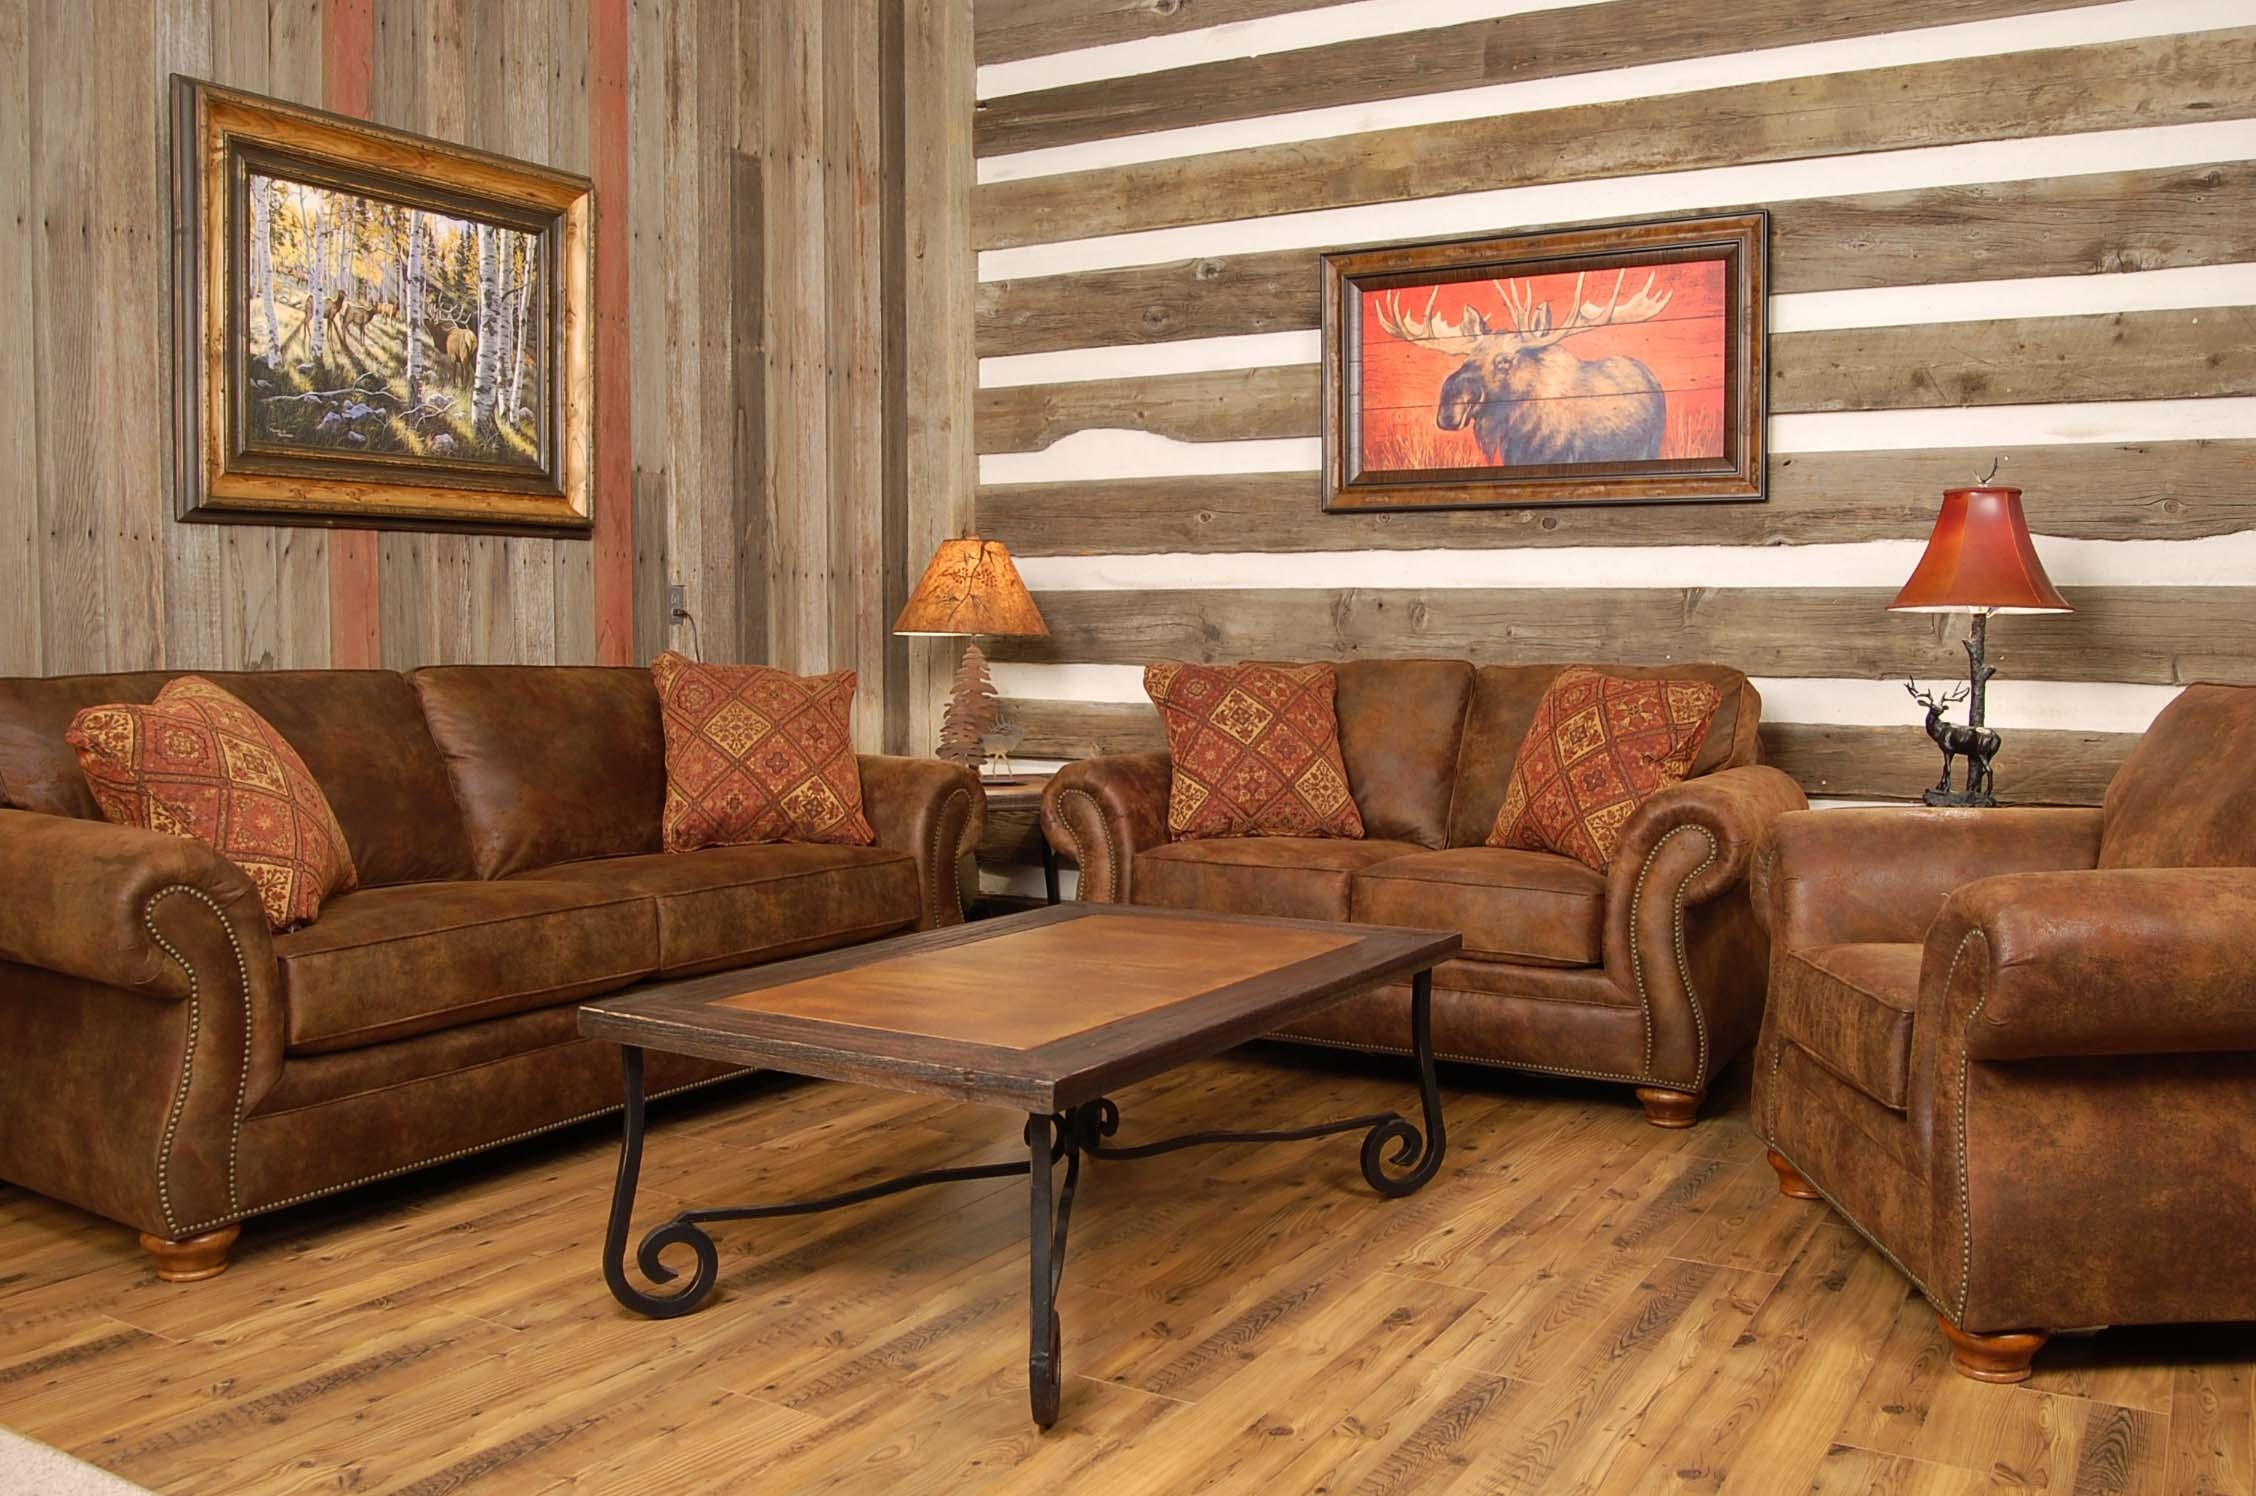 Country Style Sofas And Chairs | Tehranmix Decoration Regarding Country Style Sofas And Loveseats (Image 5 of 20)